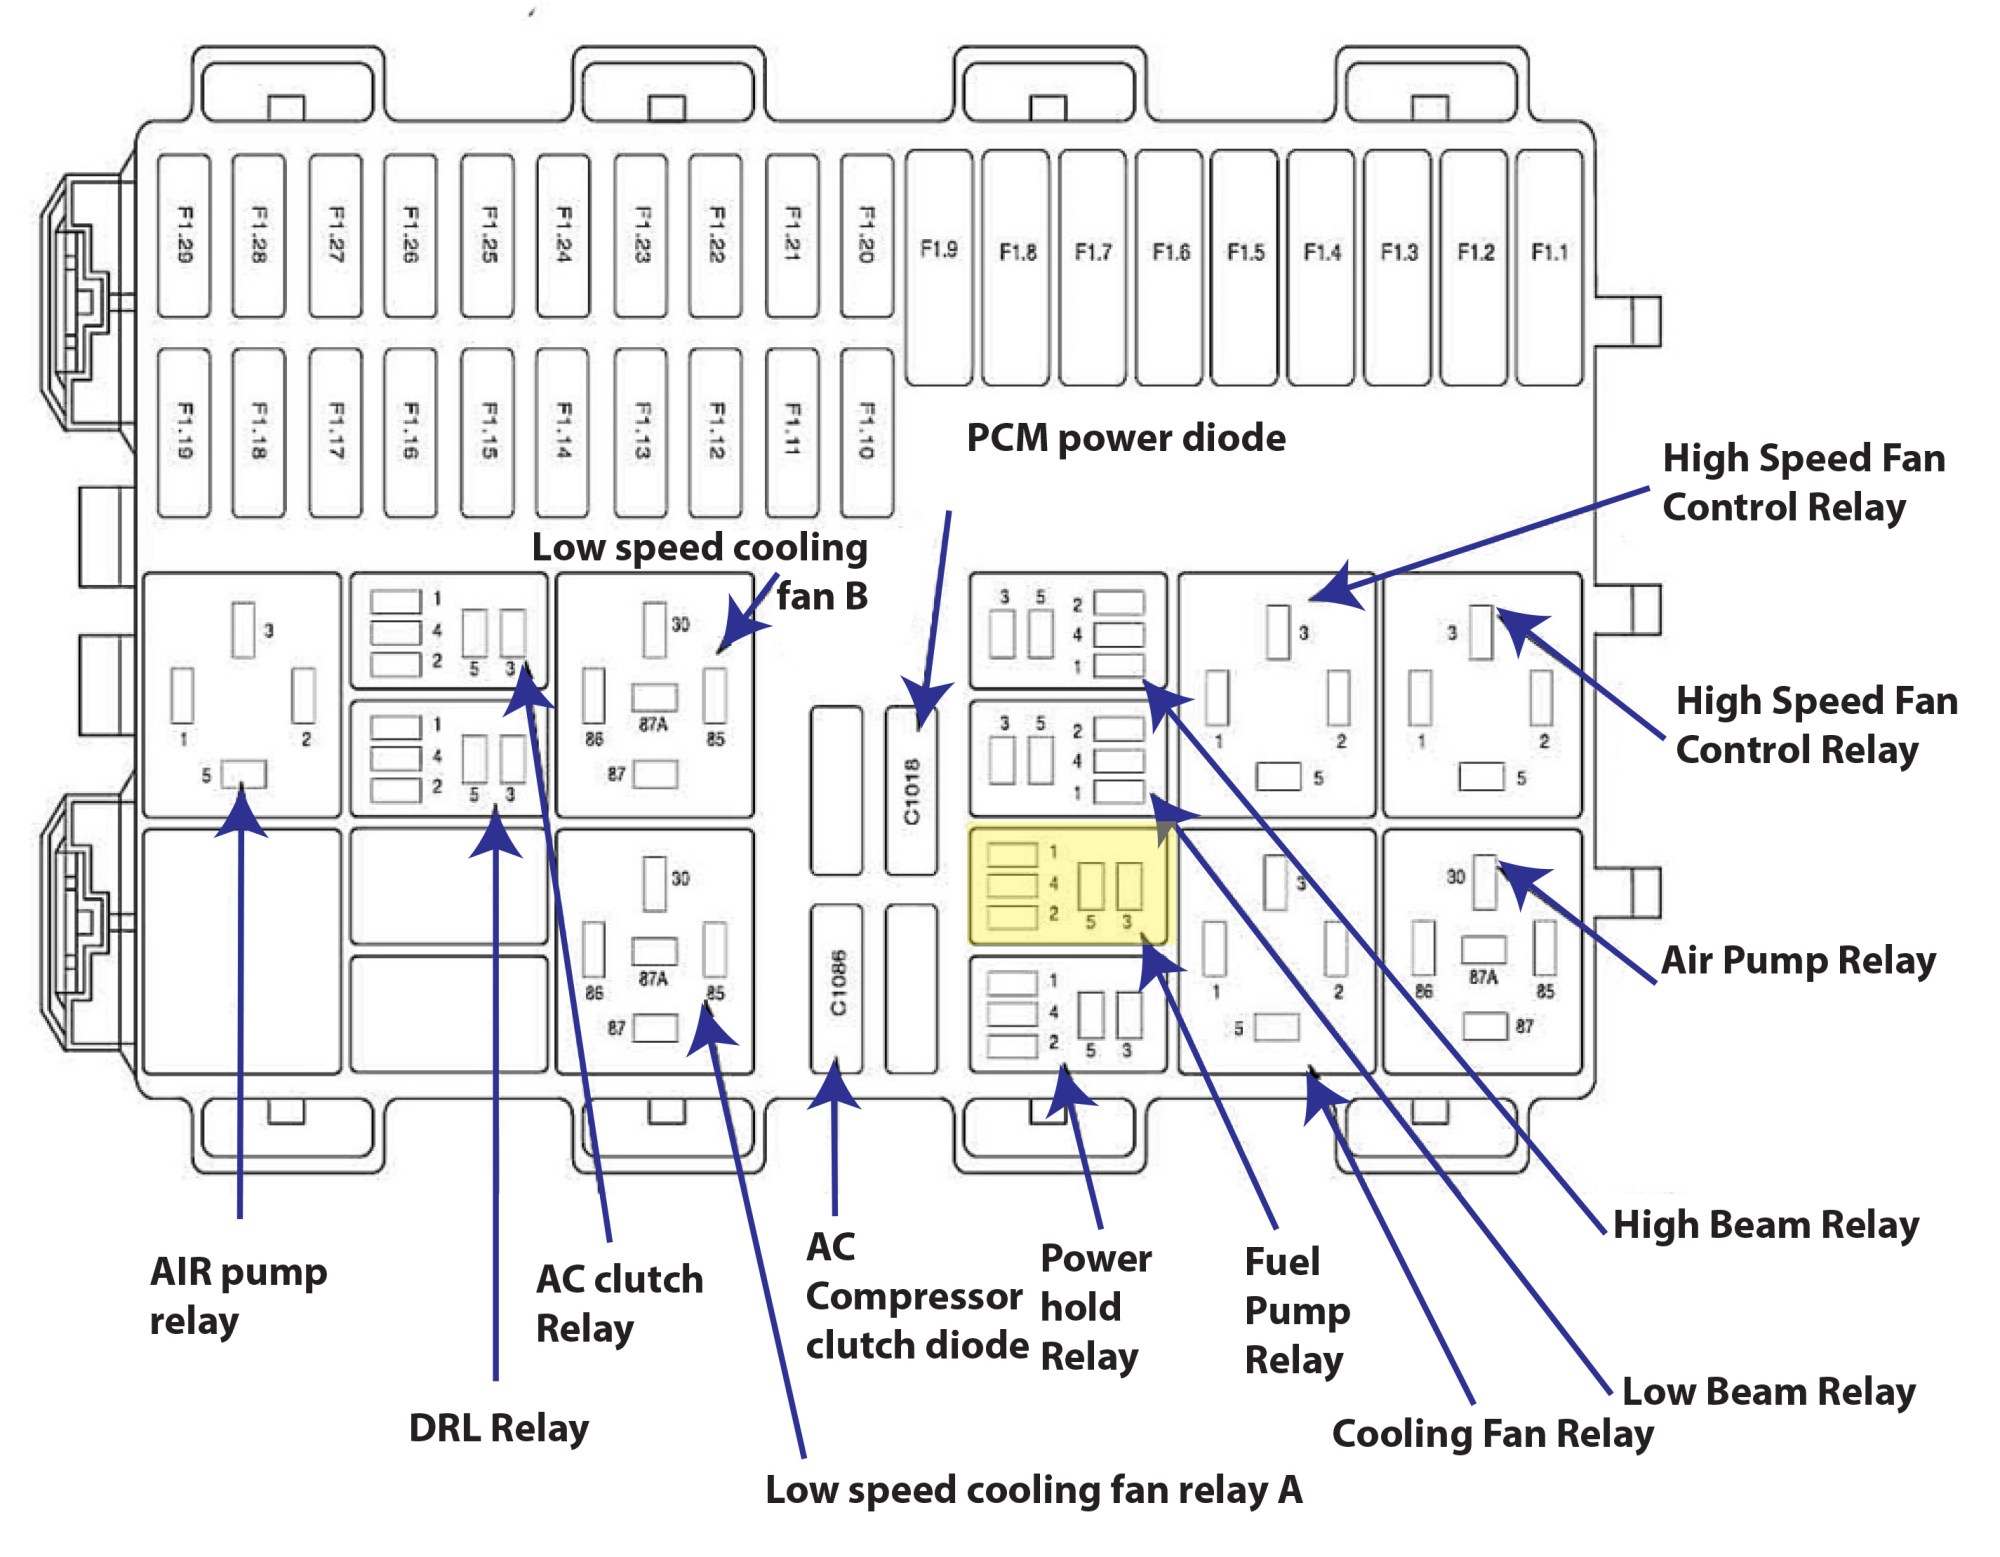 hight resolution of central junction fuse panel diagram of 2004 ford focus zxw wiring 2014 ford focus wiring diagram main relay